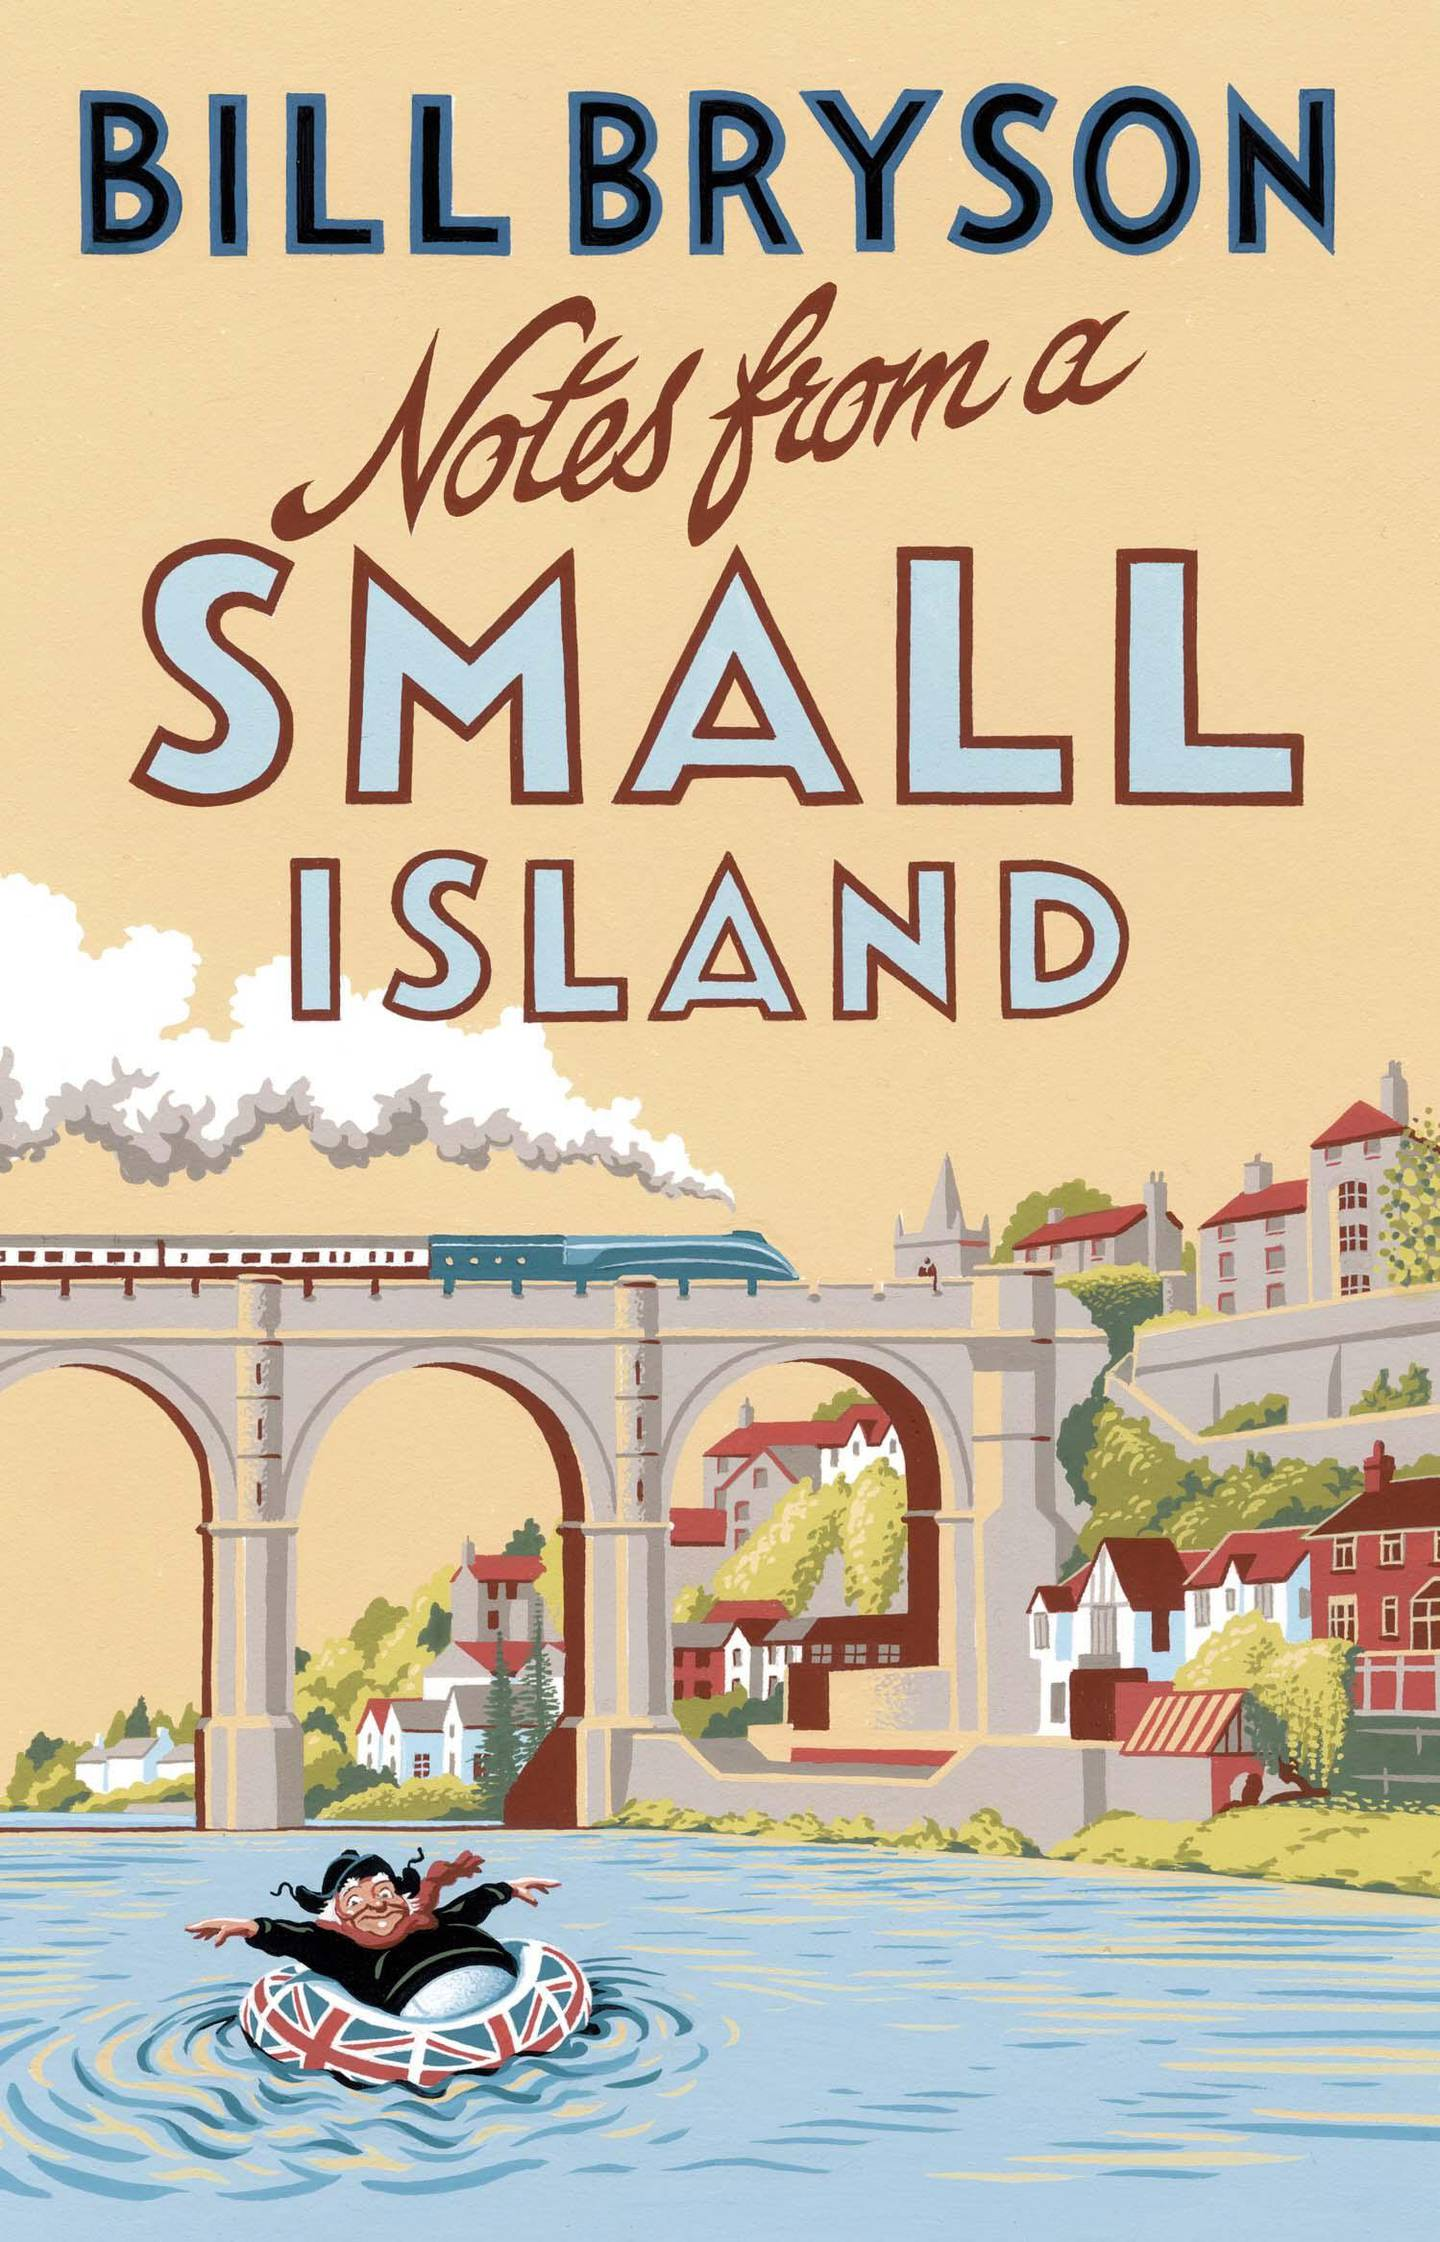 Notes from A Small Island by Bill Bryson published by Black Swan. Courtesy Penguin UK